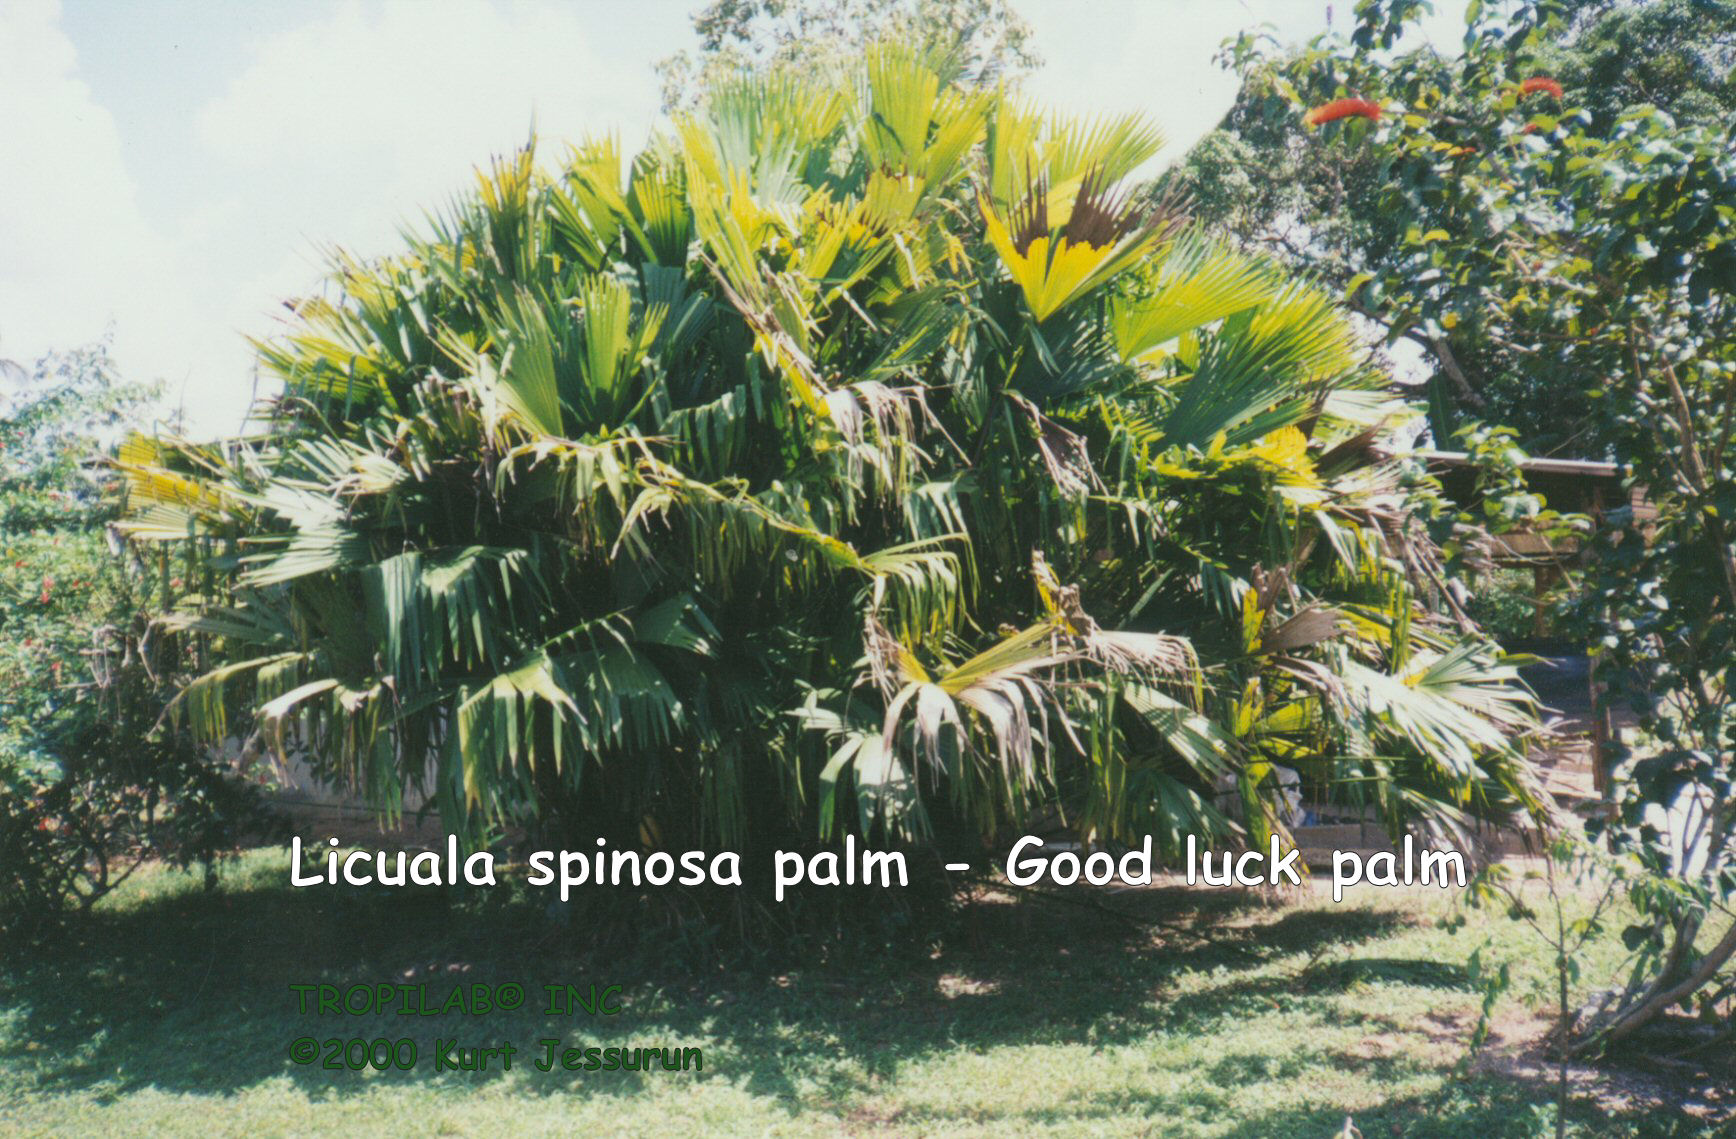 Licuala spinosa - Good luck palm